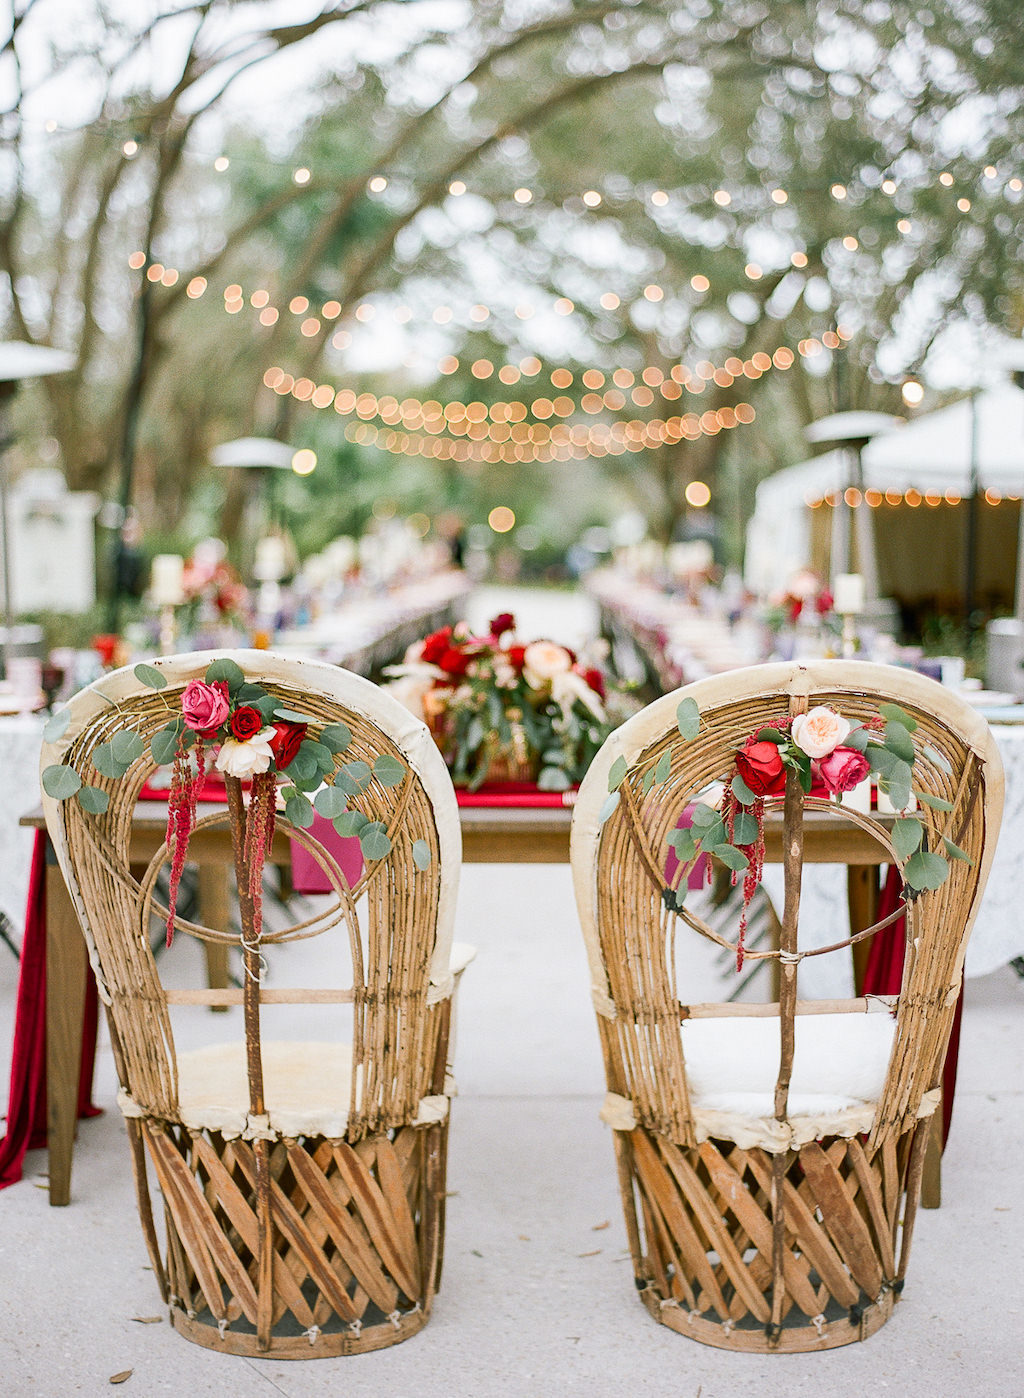 Boho Chic Vintage Inspired Outdoor Lakeland Florida Wedding Reception Decor, Wicker Chairs with Red, Pink, White and Greenery Florals on Wicker Chairs for Sweetheart Table